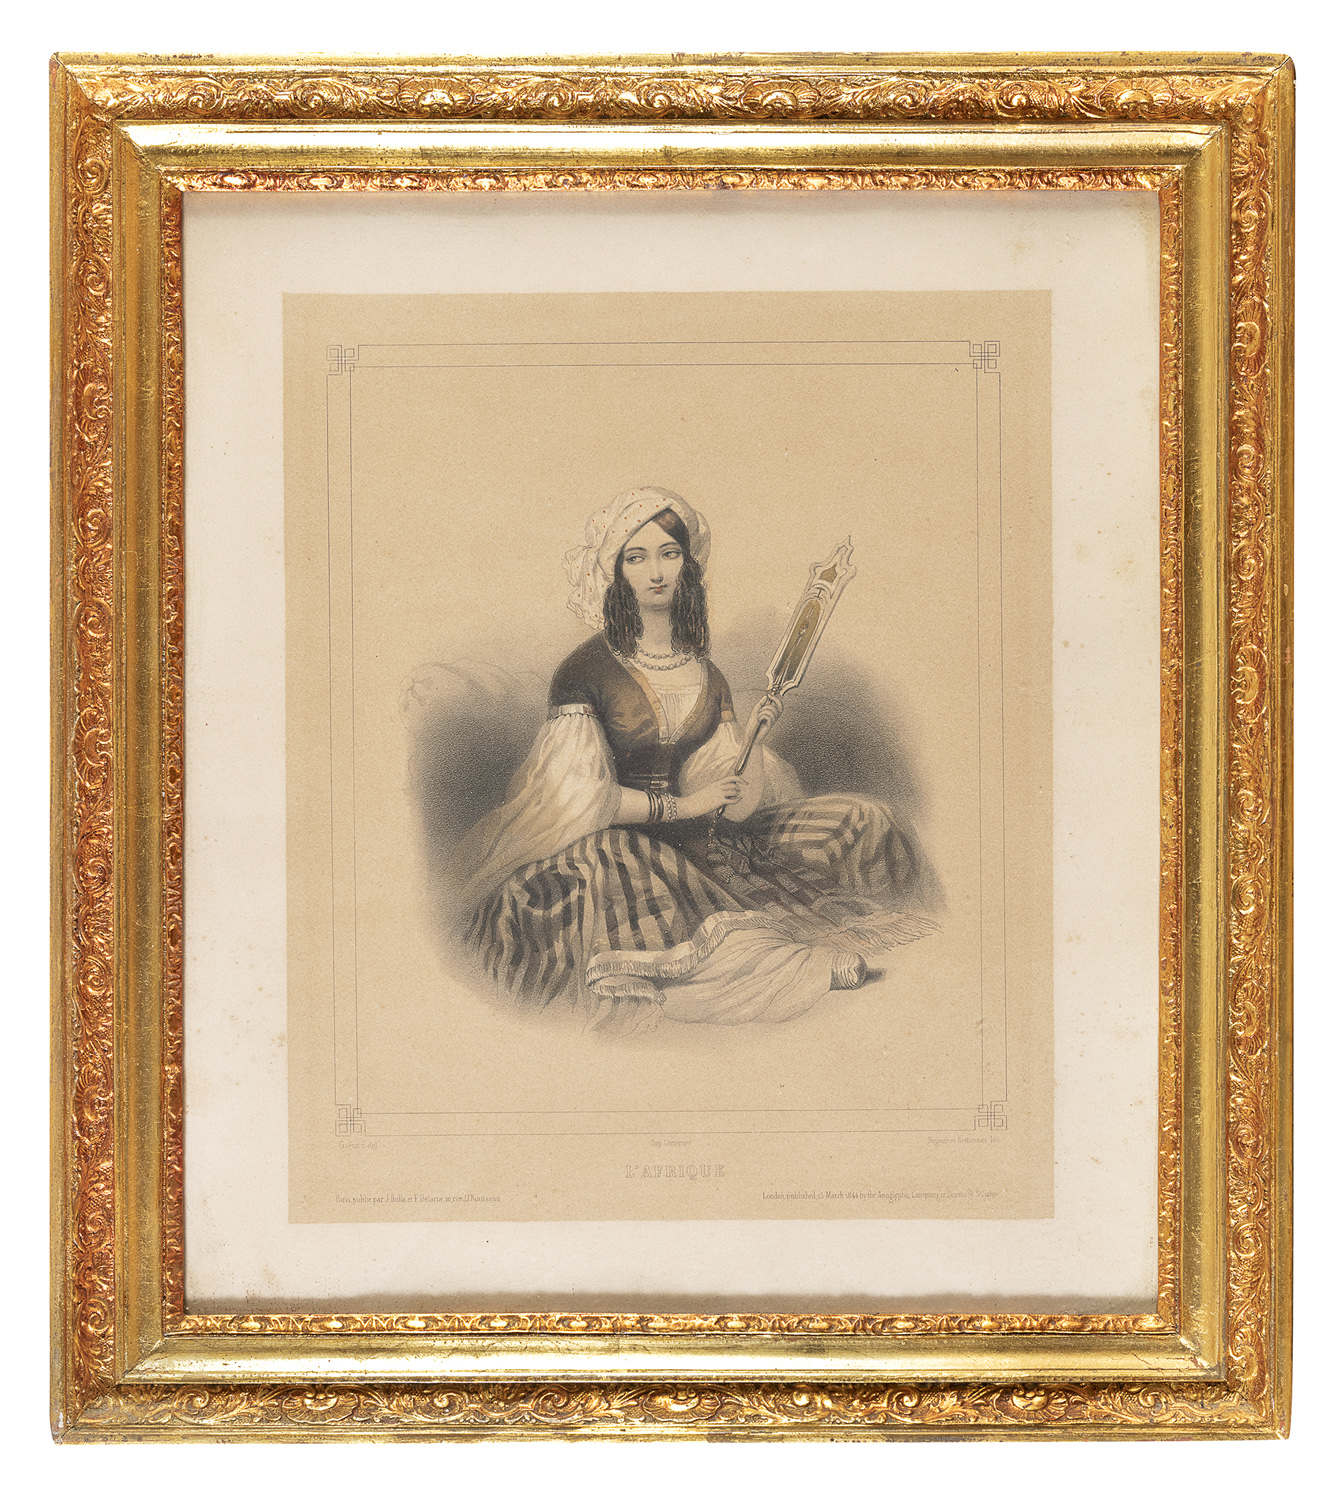 PAIR OF FRENCH ENGRAVINGS 20th CENTURY